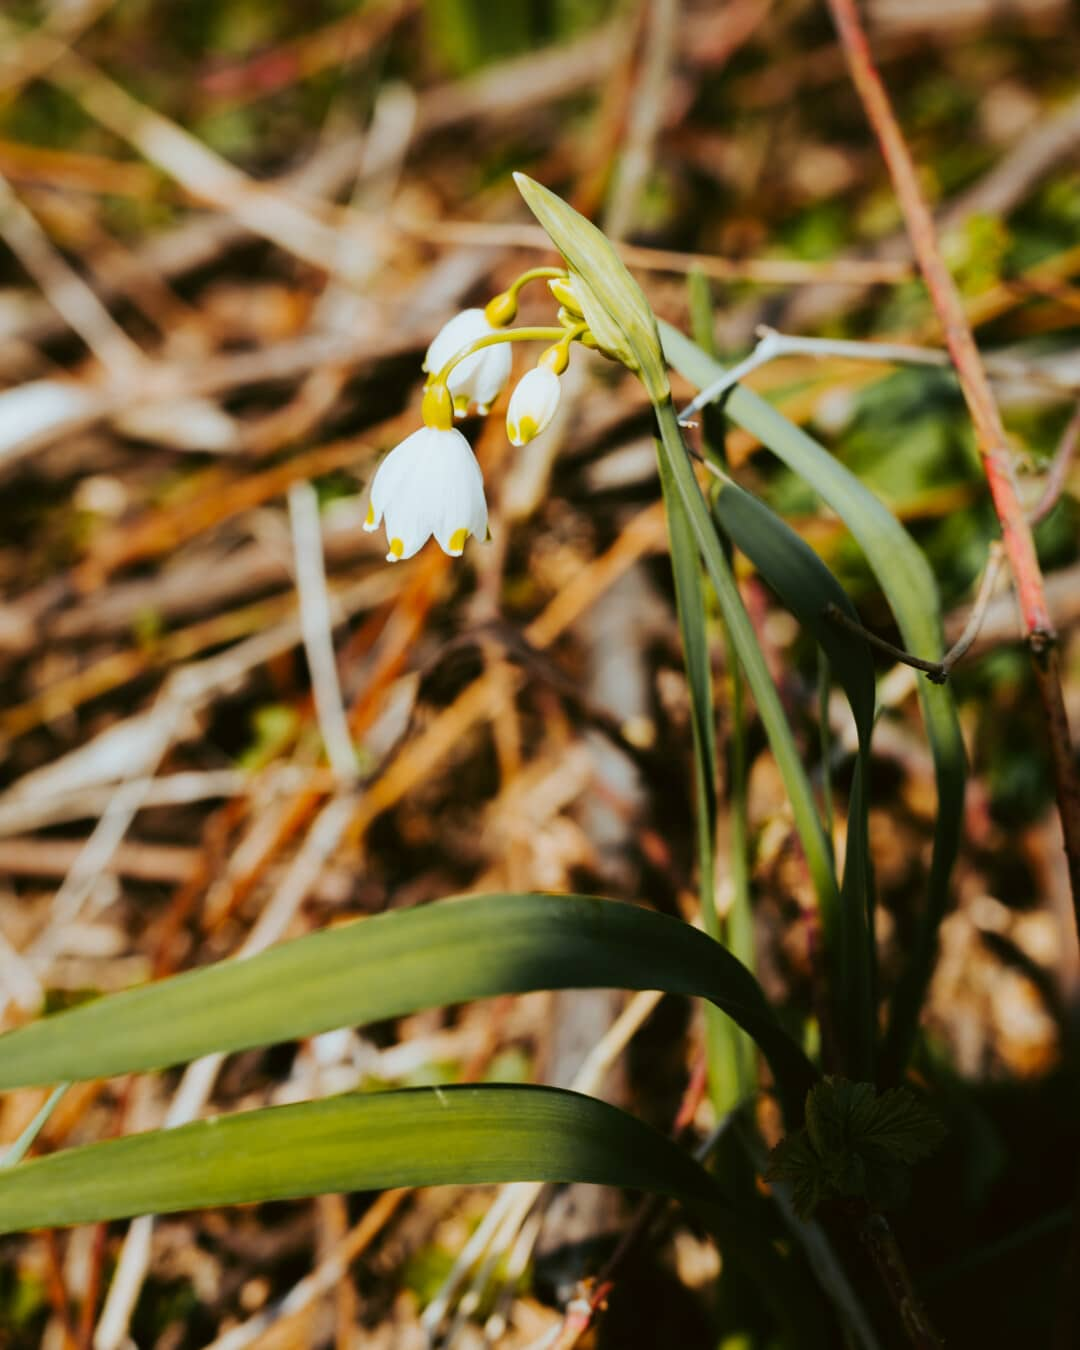 white flower, spring time, flower, leaf, plant, nature, outdoors, flora, grass, fair weather